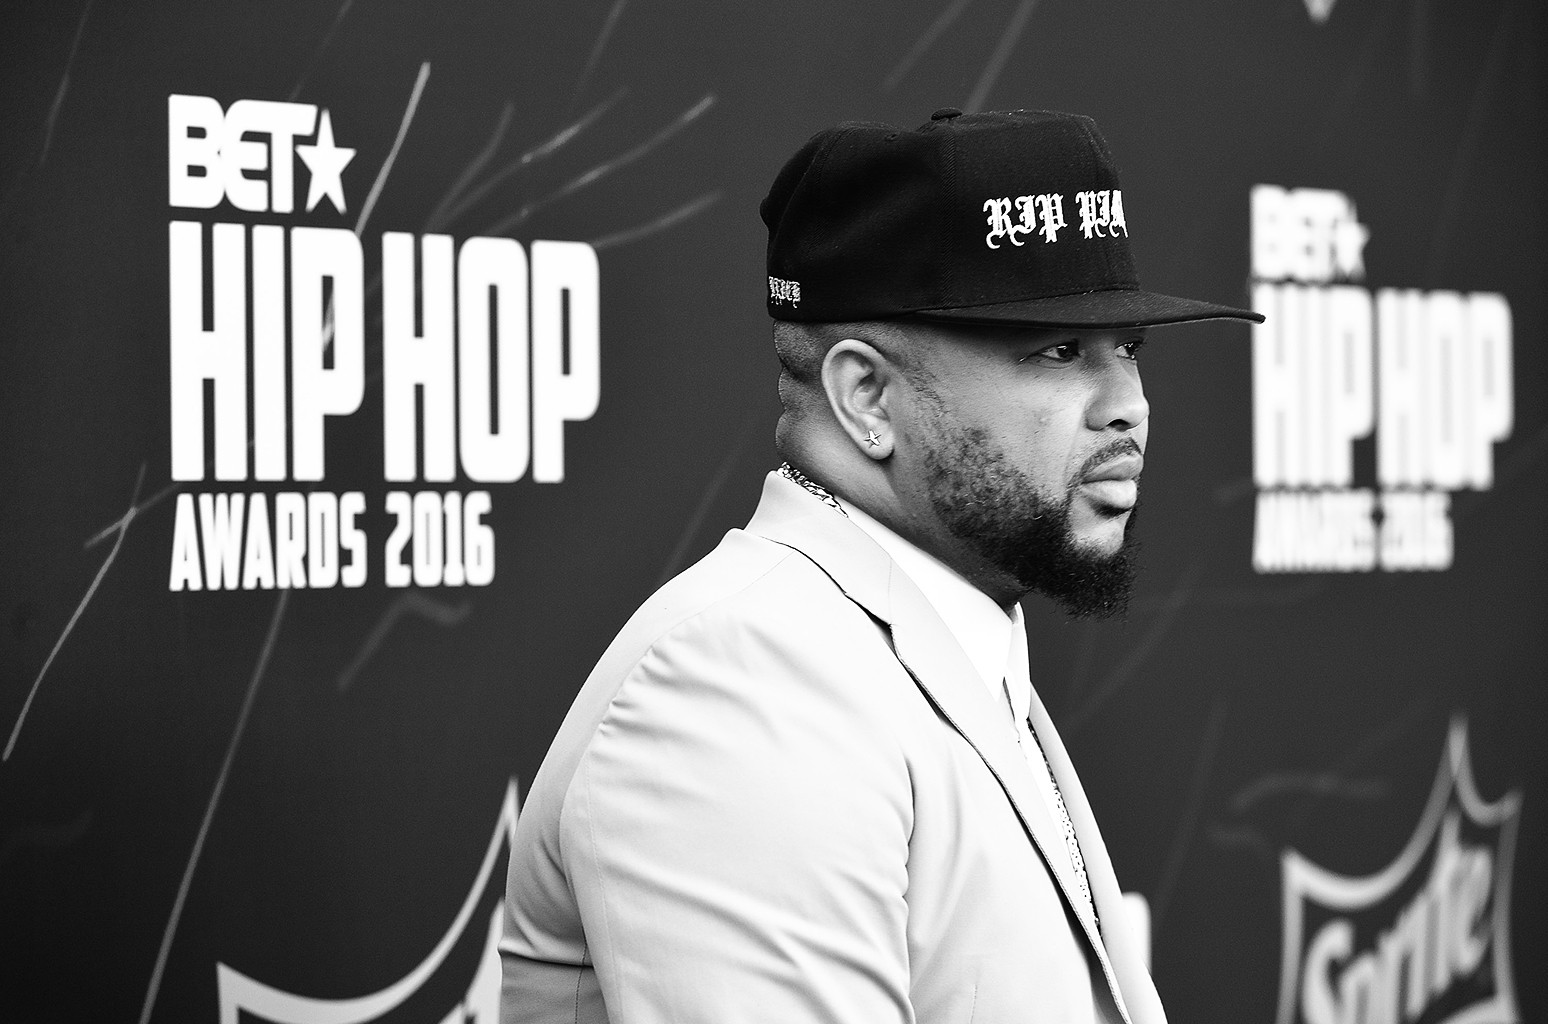 The-Dream attends the 2016 BET Hip Hop Awards